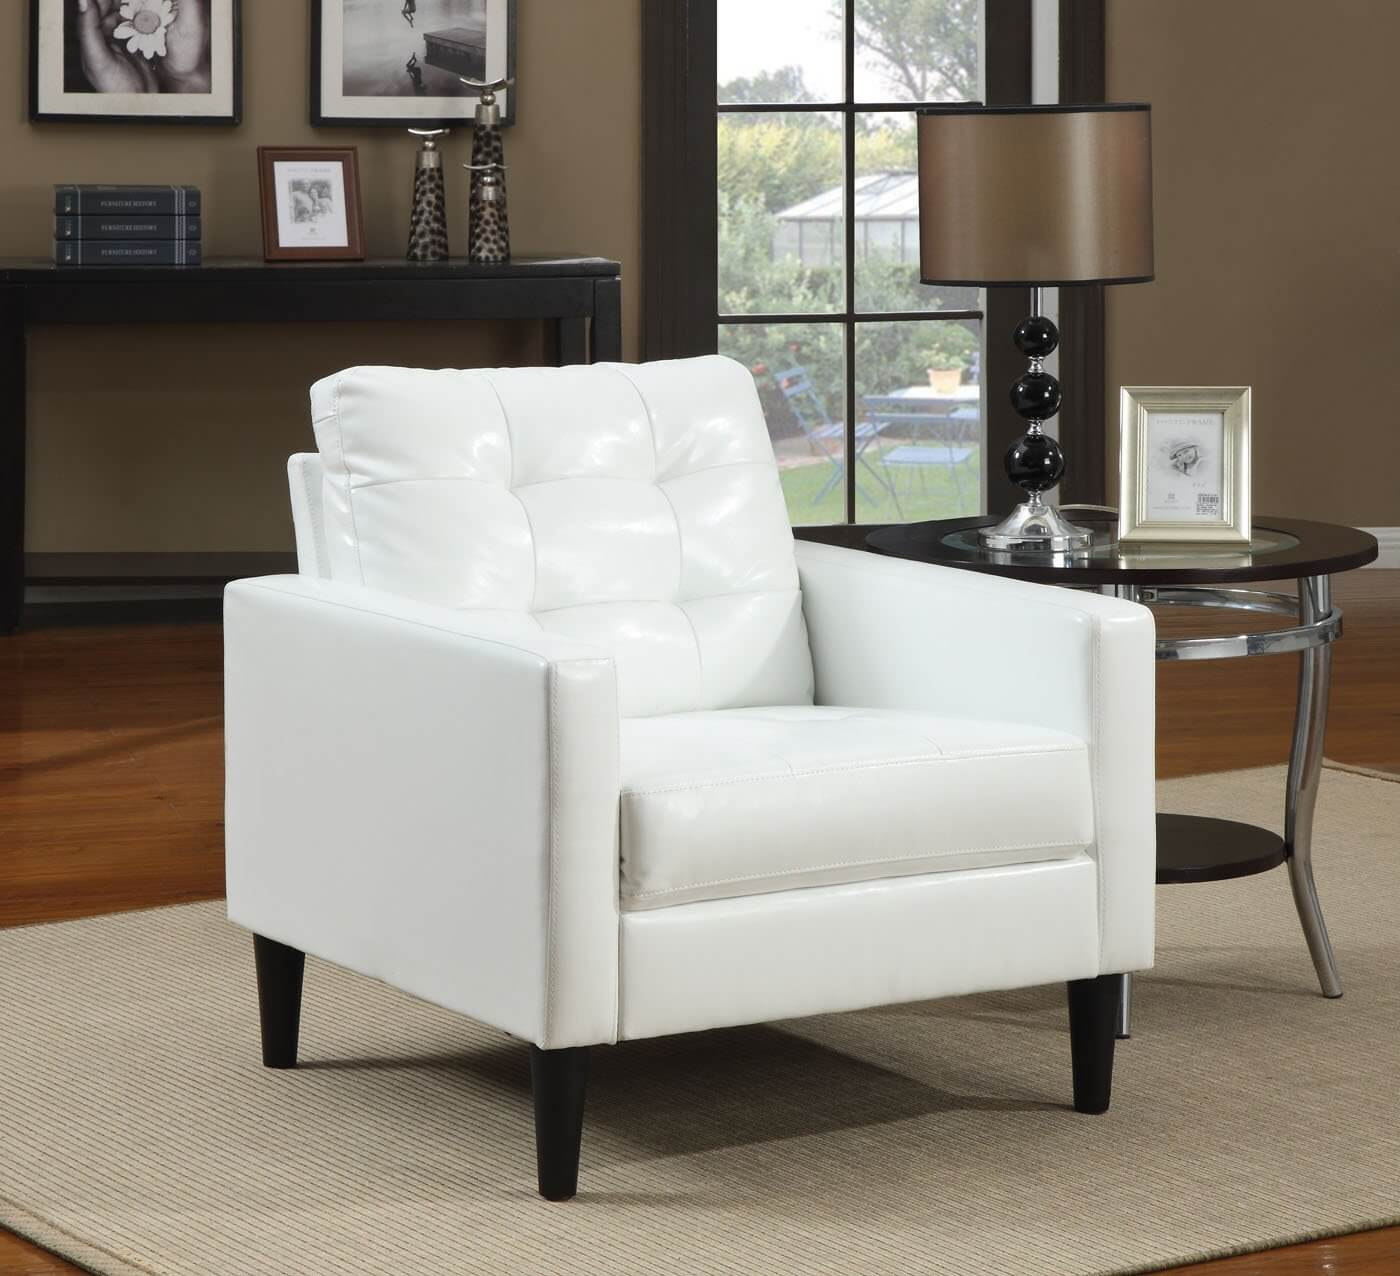 Balin collection accent chair from ACME features stuffed cushion back in  polyurethane faux white leather 37 White Modern Accent Chairs for the Living Room